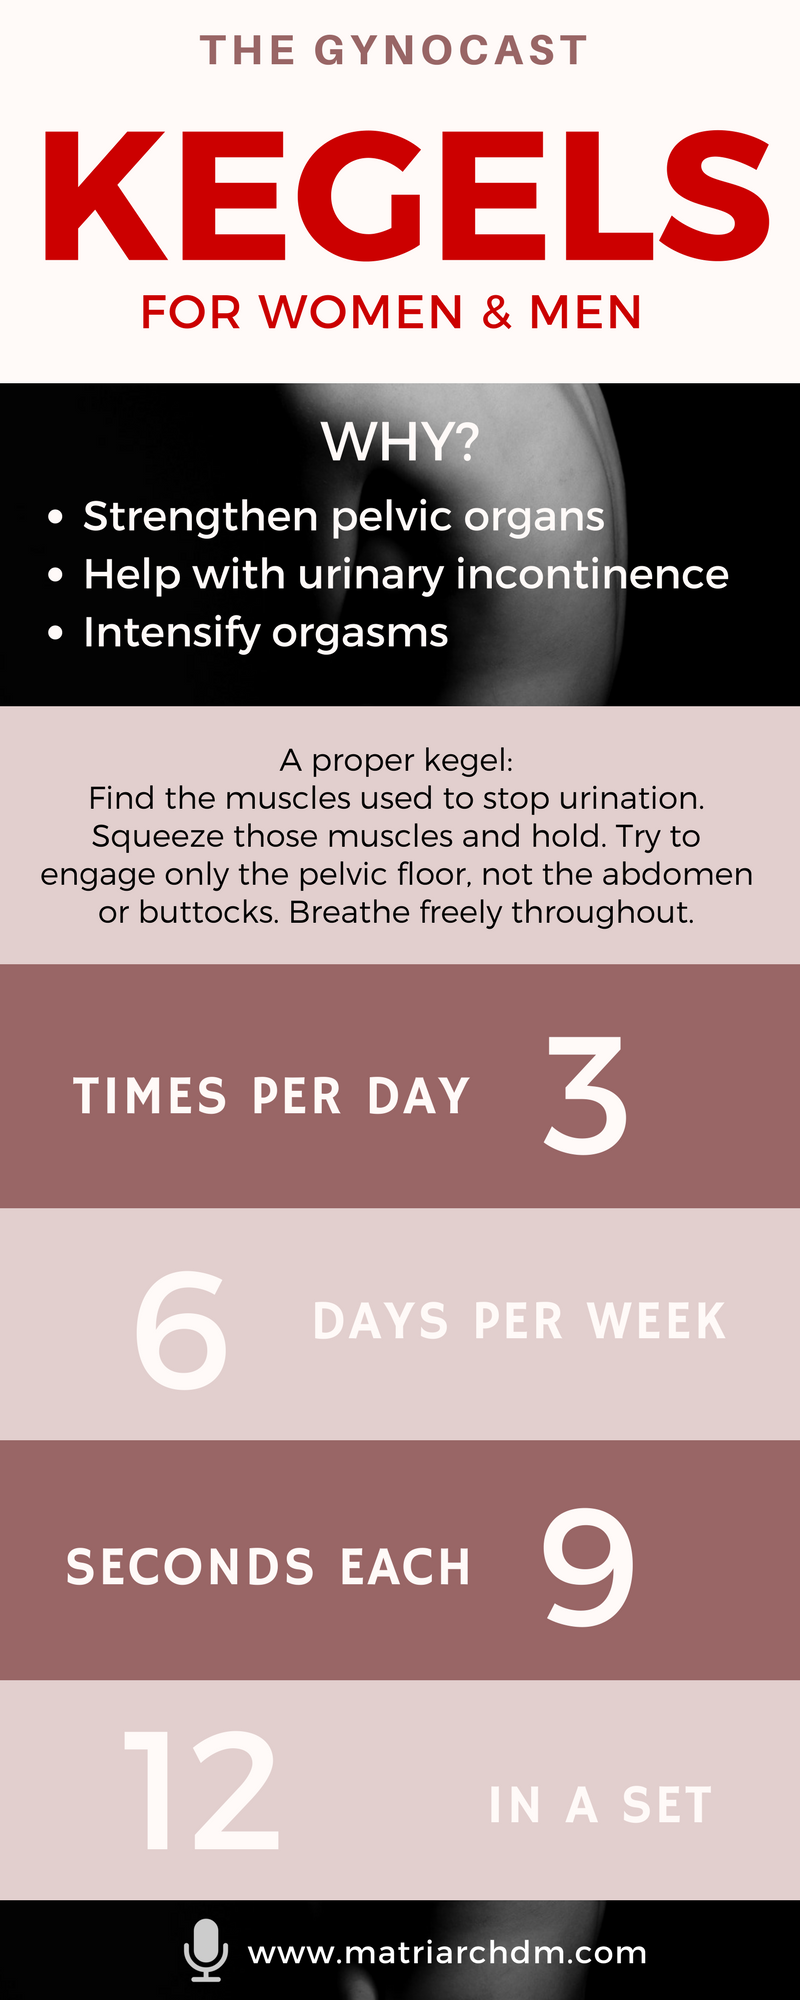 The Gynocast Kegels Infographic.png